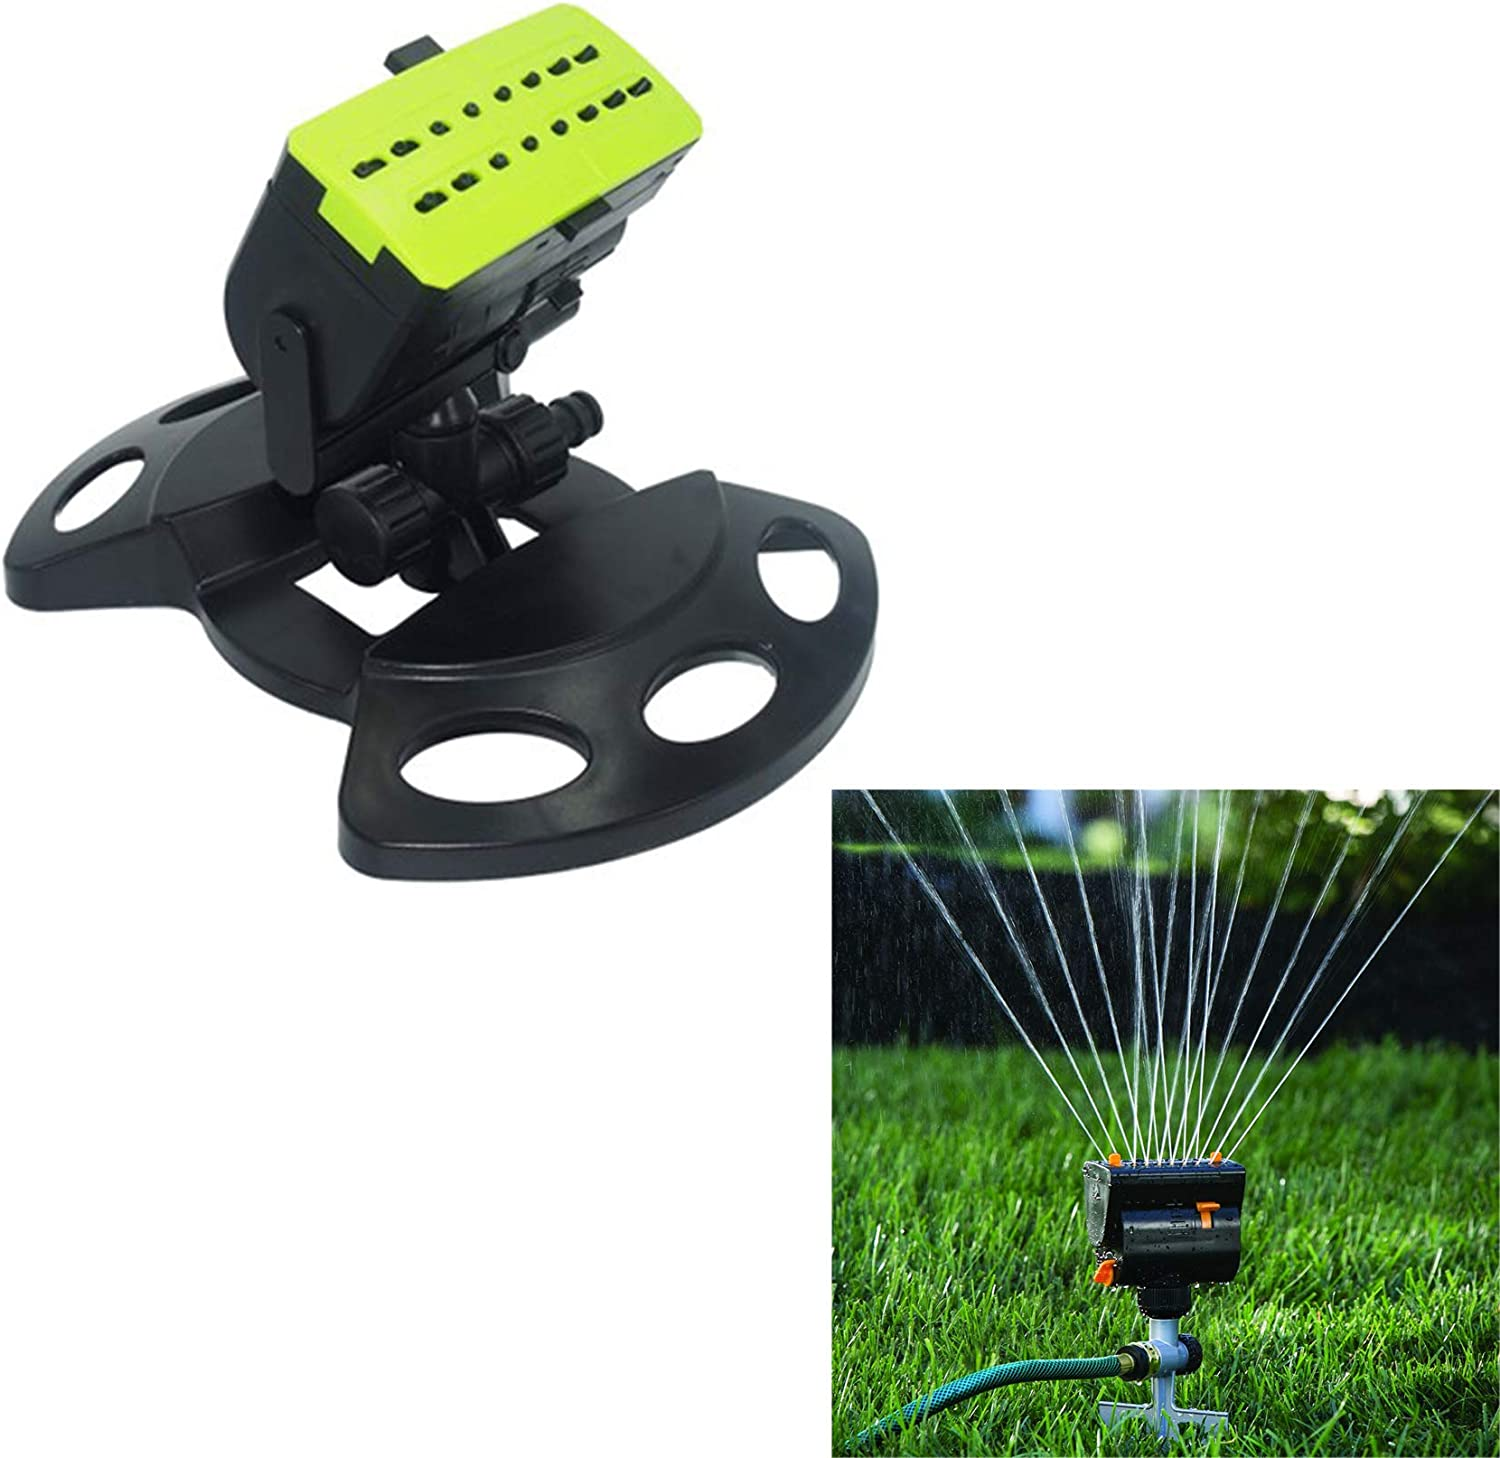 XIONGGG Garden Watering Sprinkler, Automatic Oscillating Lawn Sprinkler, for Yard Lawn Park Plant Flower Outdoor